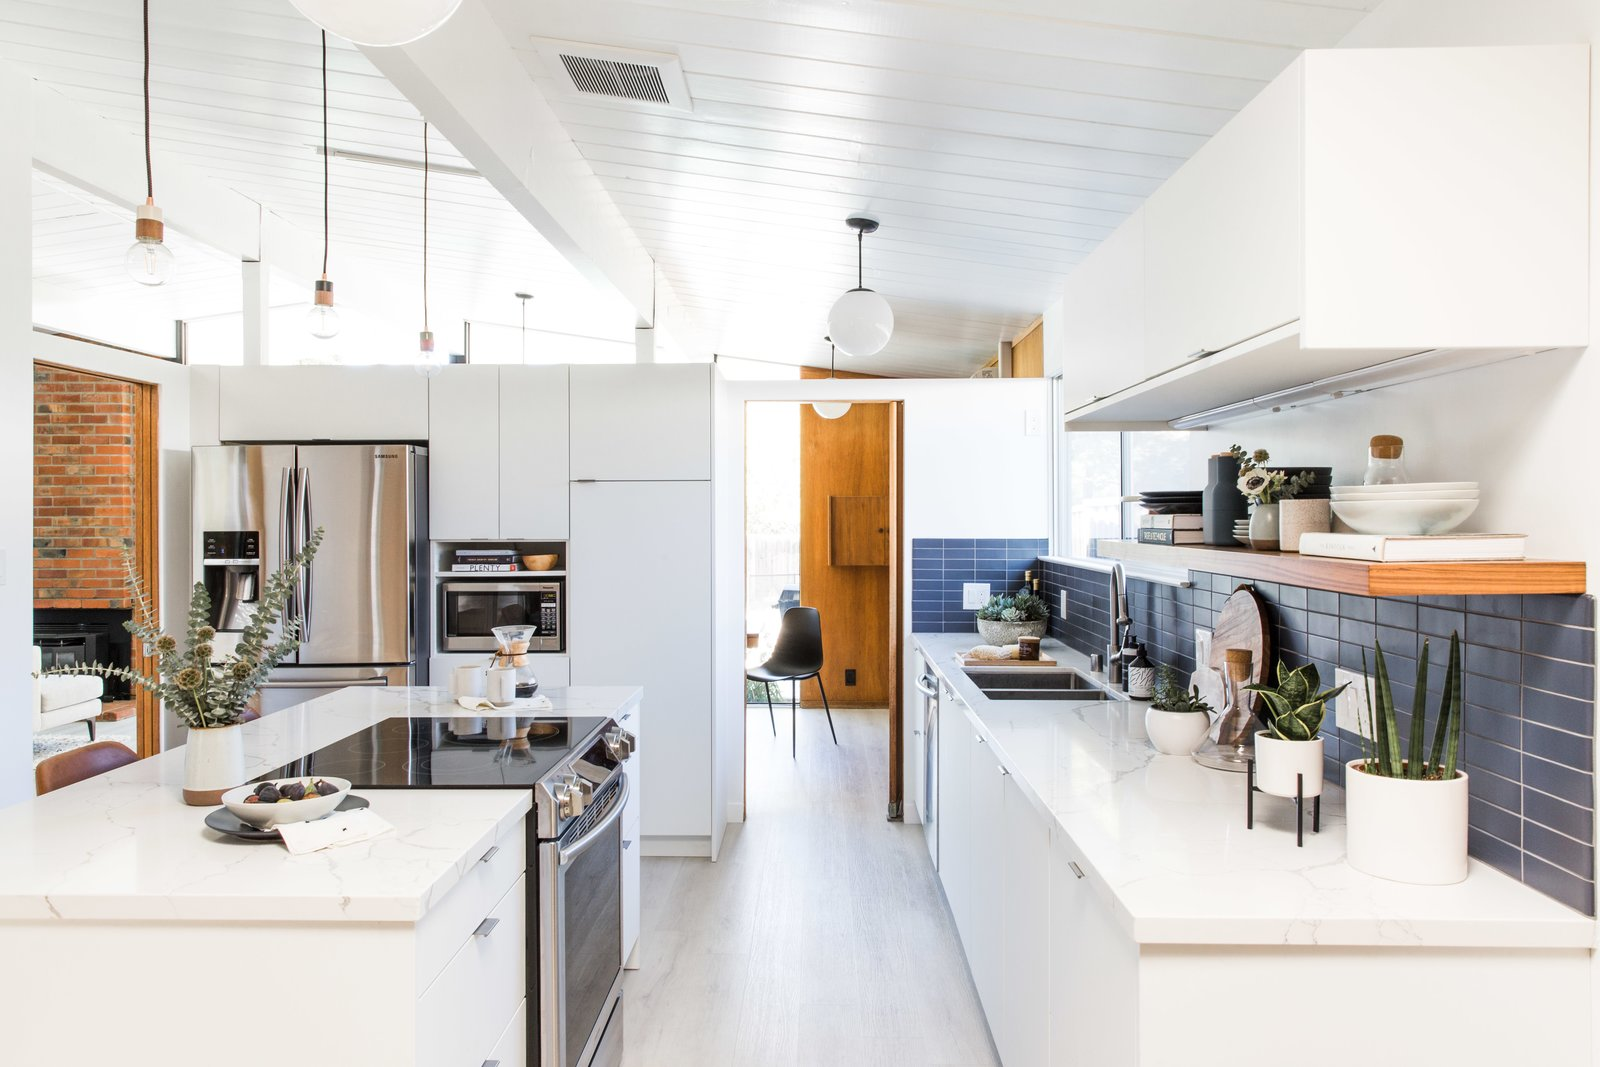 5 Kitchen Renovations Under $100k